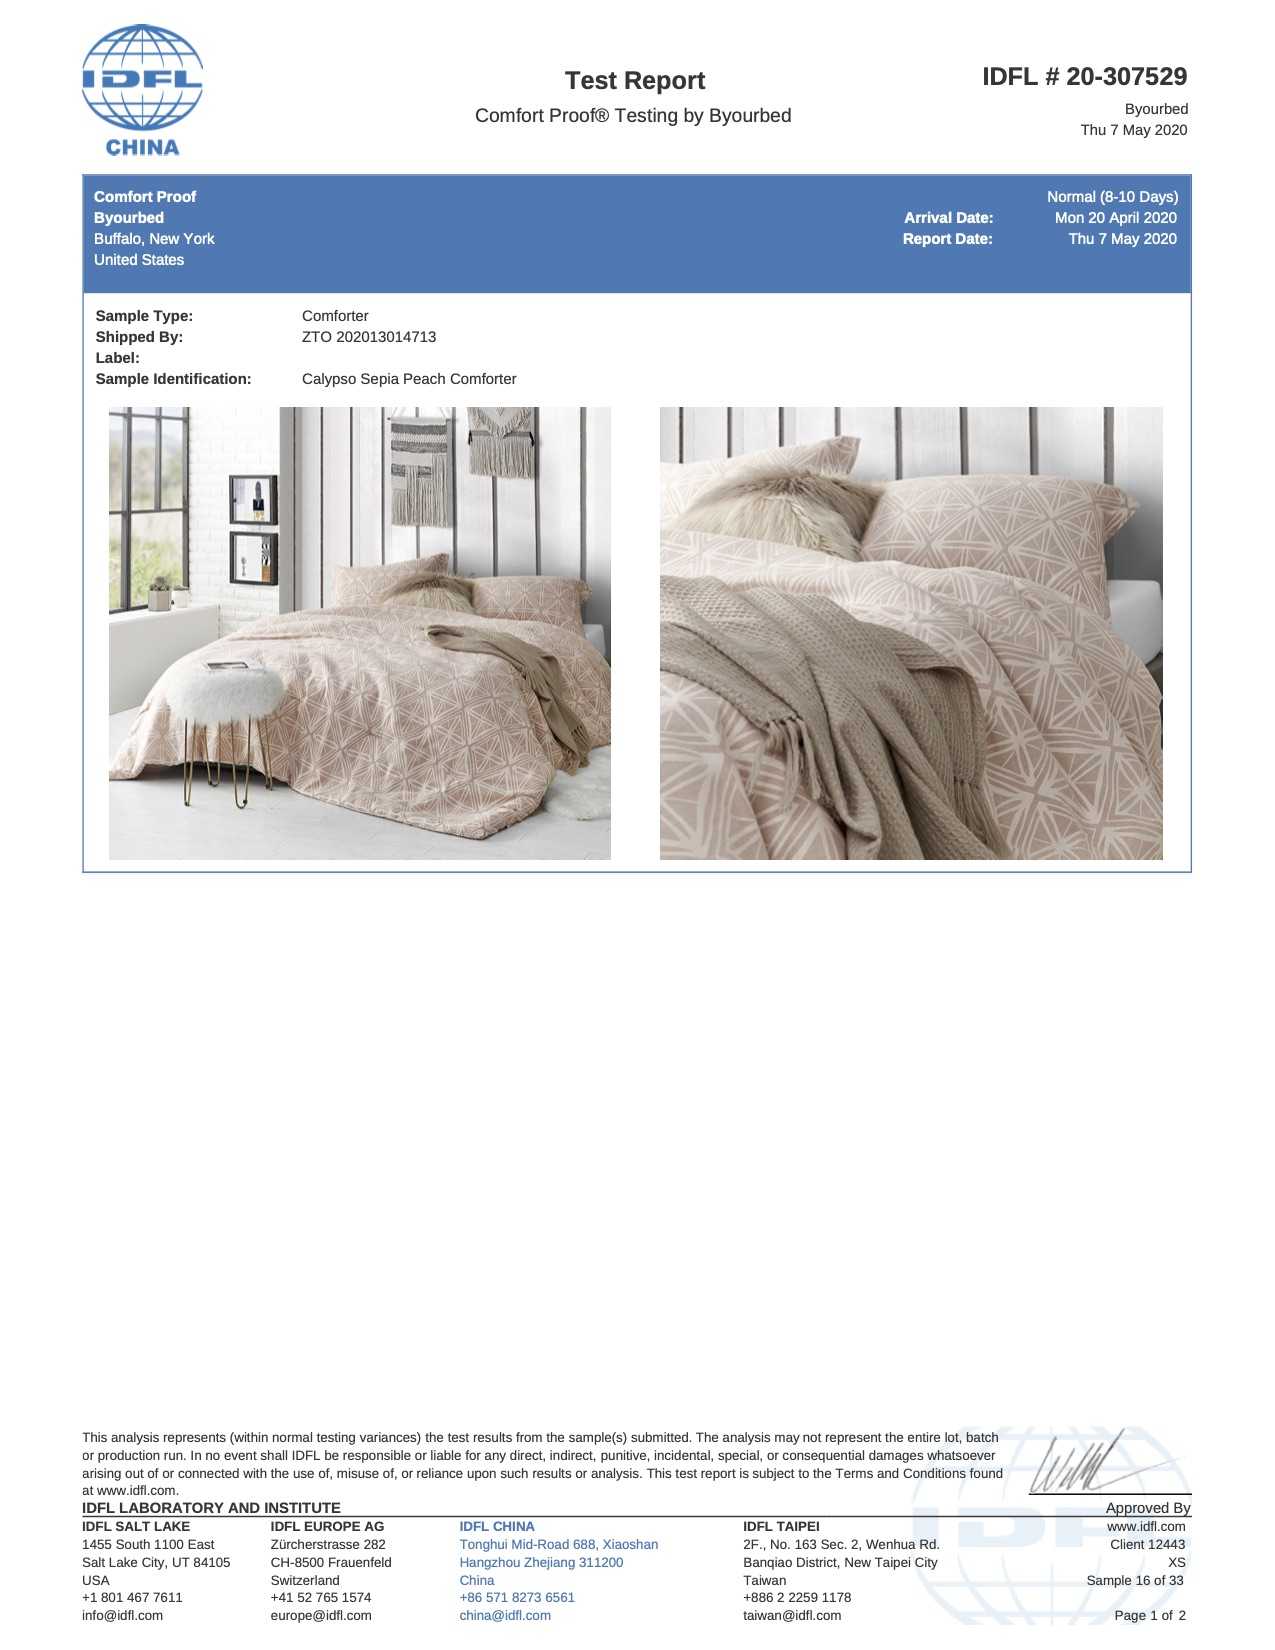 Soft Cotton Xl King Bedding Designer Calypso Sepia Peach King Extra Large Comforter With Matching King Shams